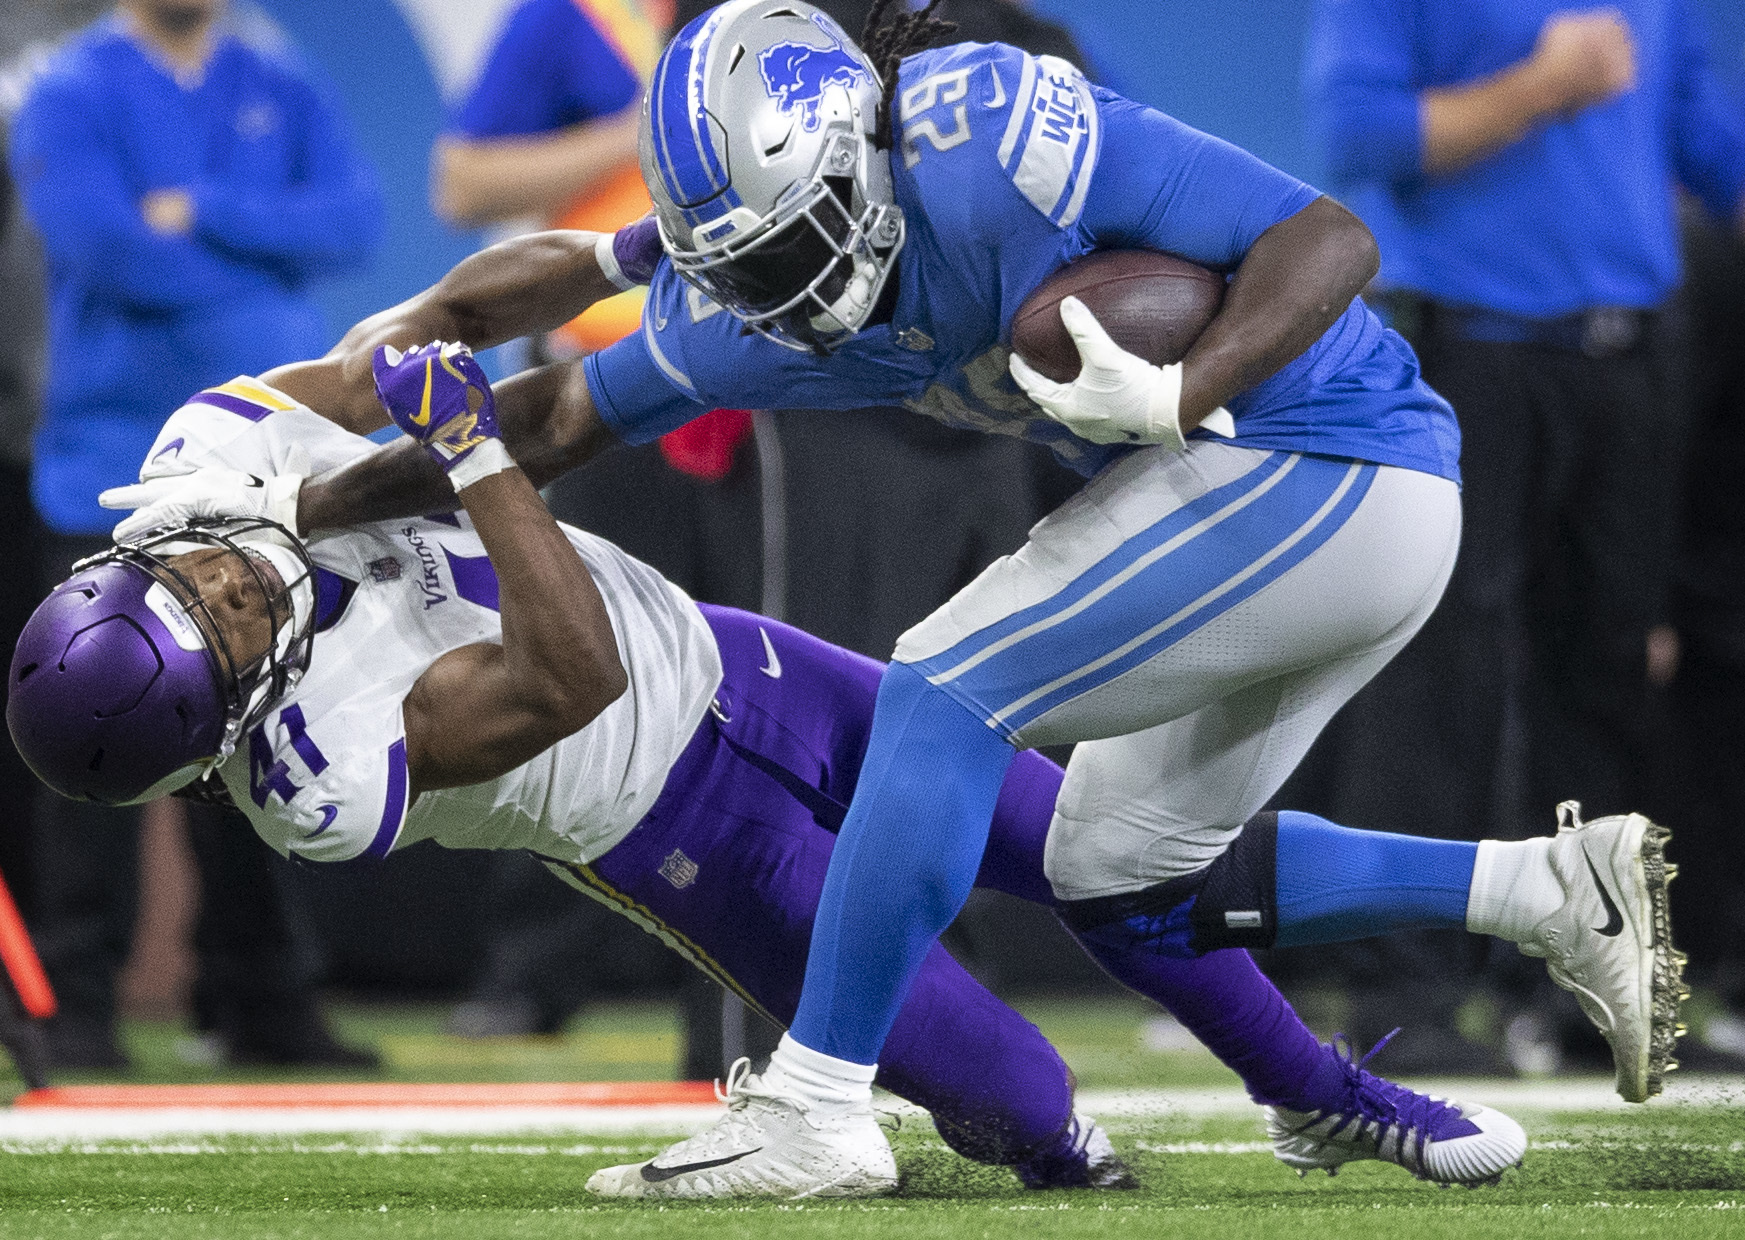 Detroit Lions running back LeGarrette Blount (29) stiff armed Minnesota Vikings defensive back Anthony Harris (41) for a first down in the forth quarter at Ford Field Sunday December 23, 2018 in Detroit, MI.] The Minnesota Vikings beat the Detroit Lions